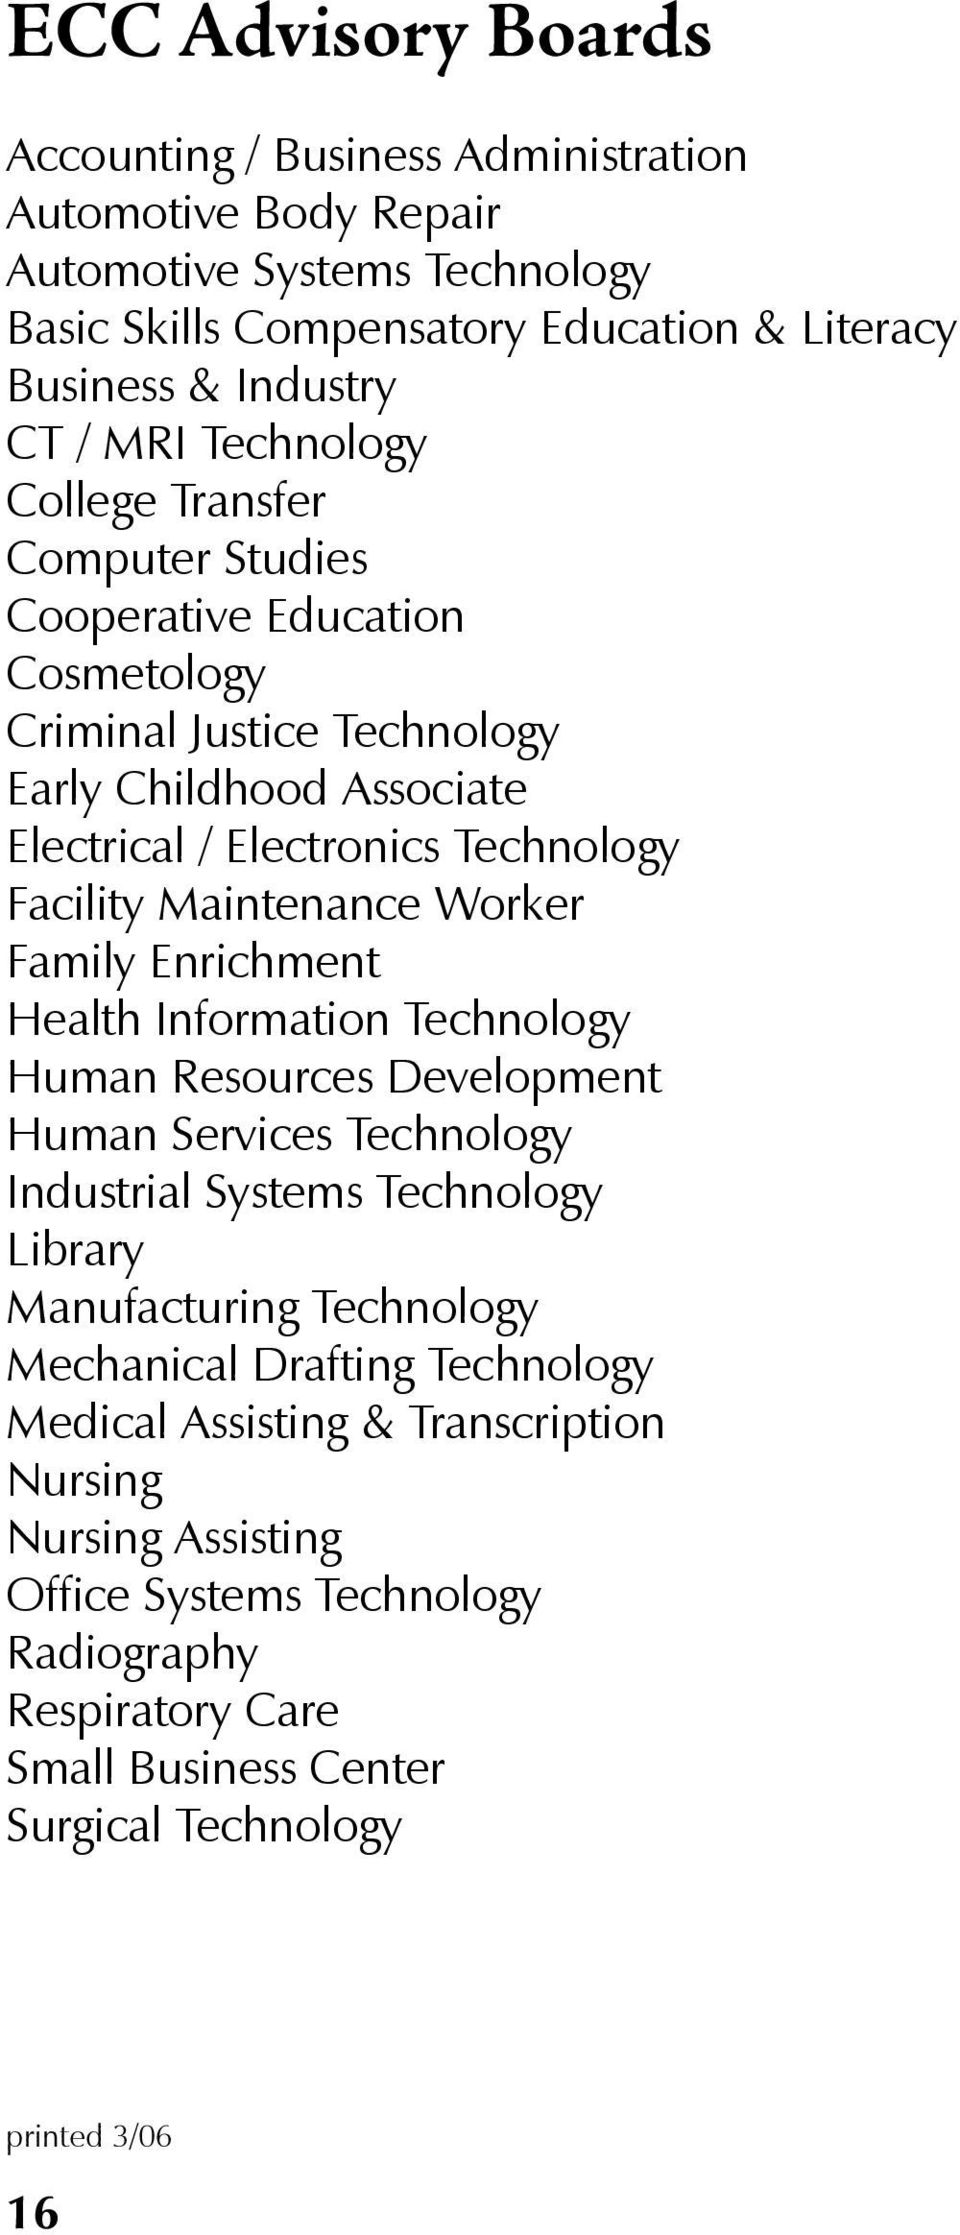 Maintenance Worker Family Enrichment Health Information Technology Human Resources Development Human Services Technology Industrial Systems Technology Library Manufacturing Technology